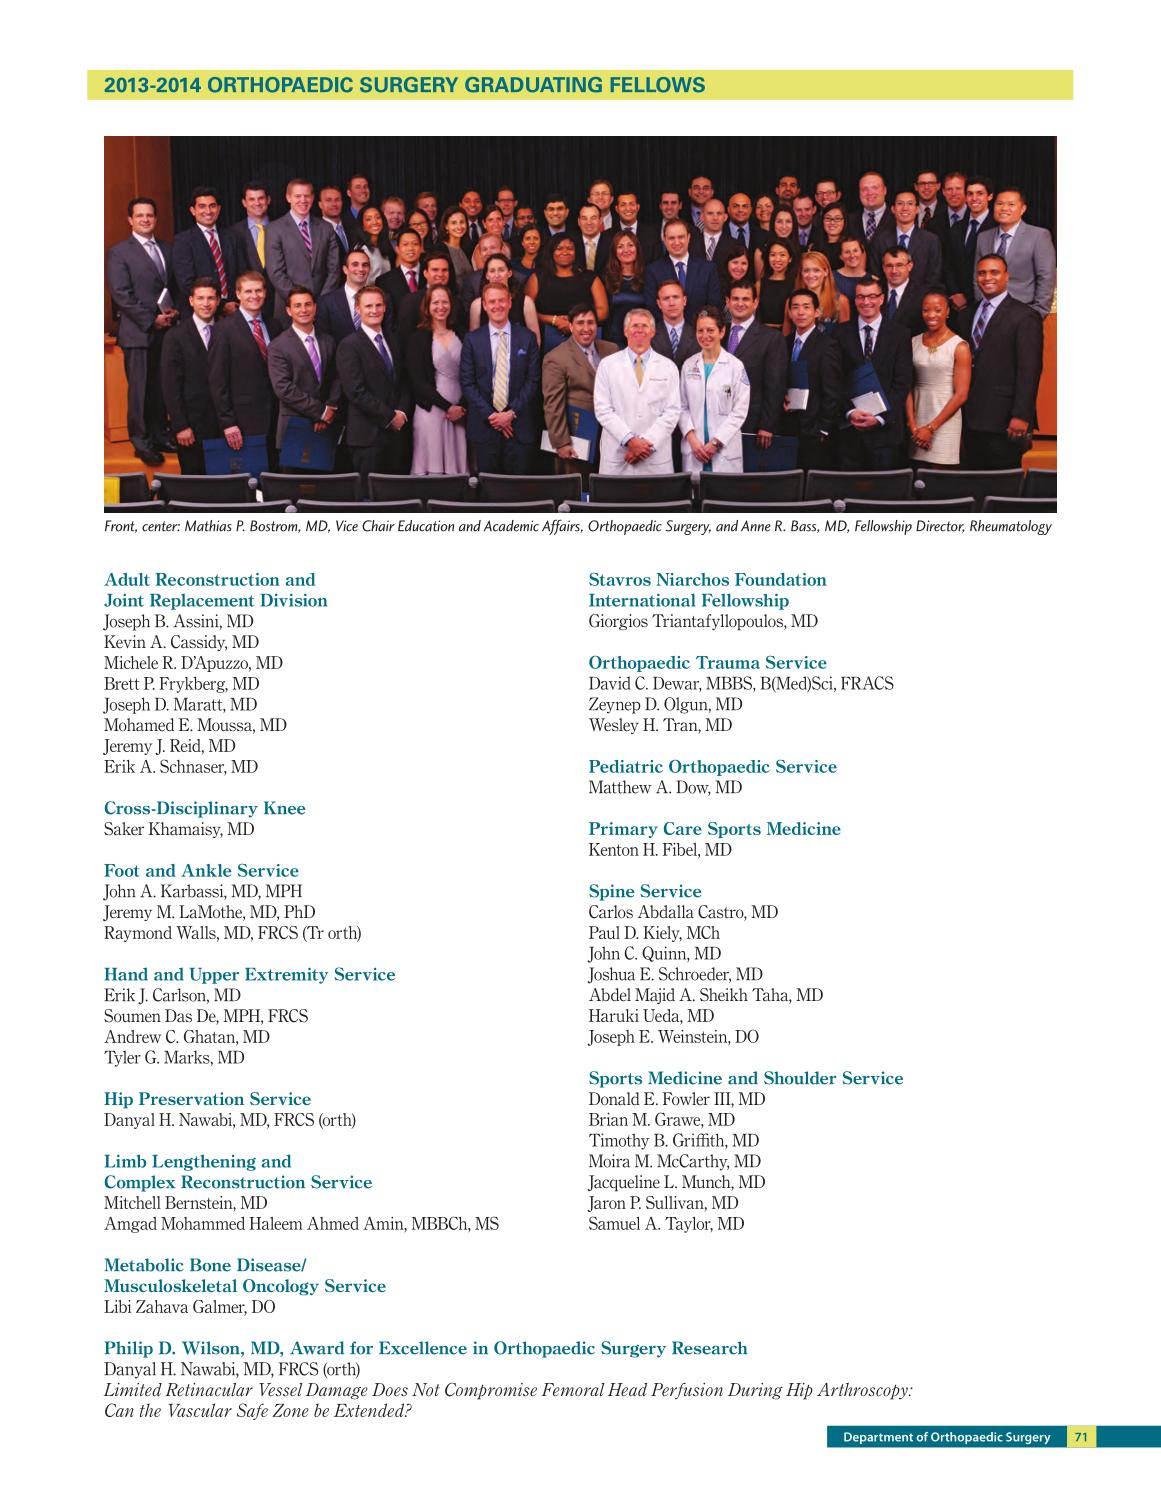 Orthopaedic Surgery 2013-2014 Annual Report - Game Changers by